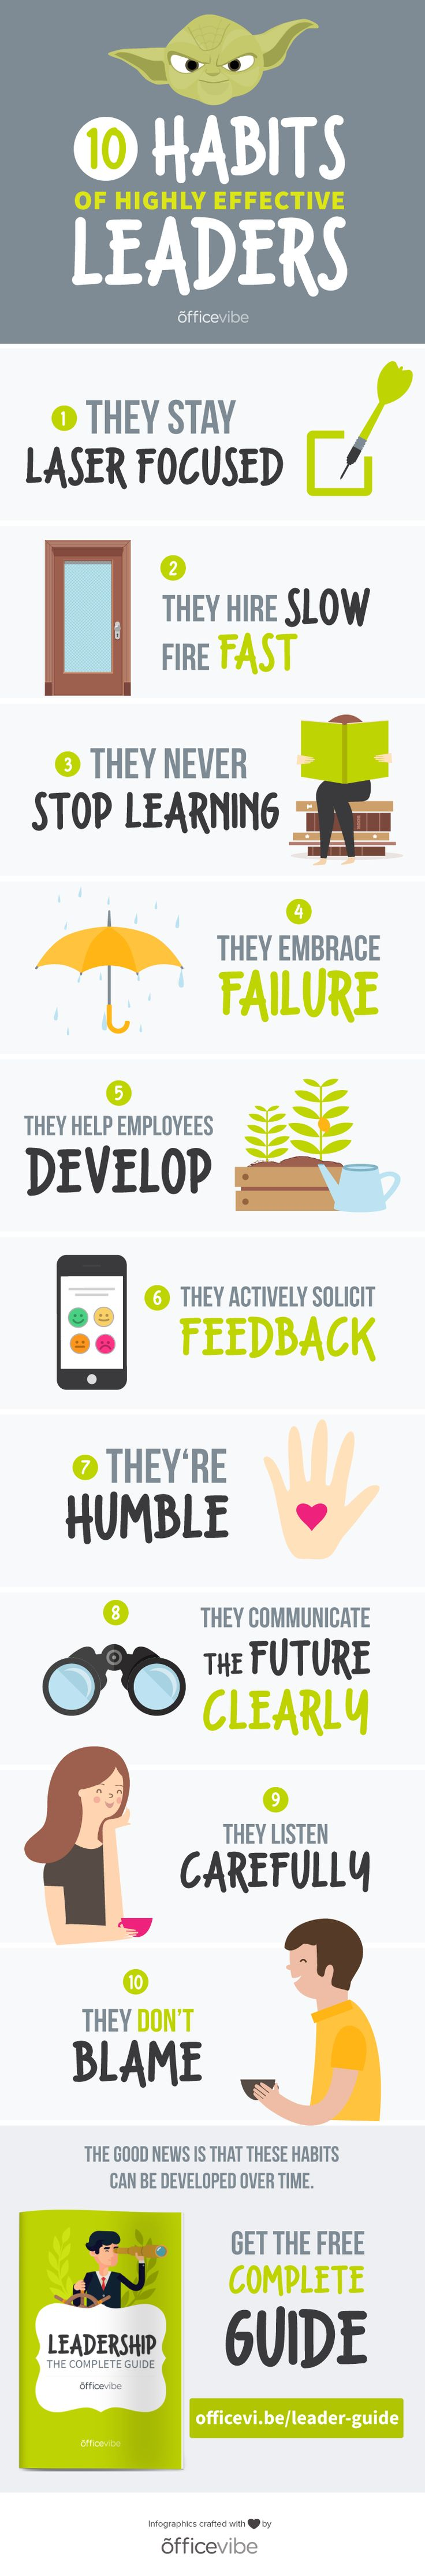 10 Habits Of Highly Effective Leaders